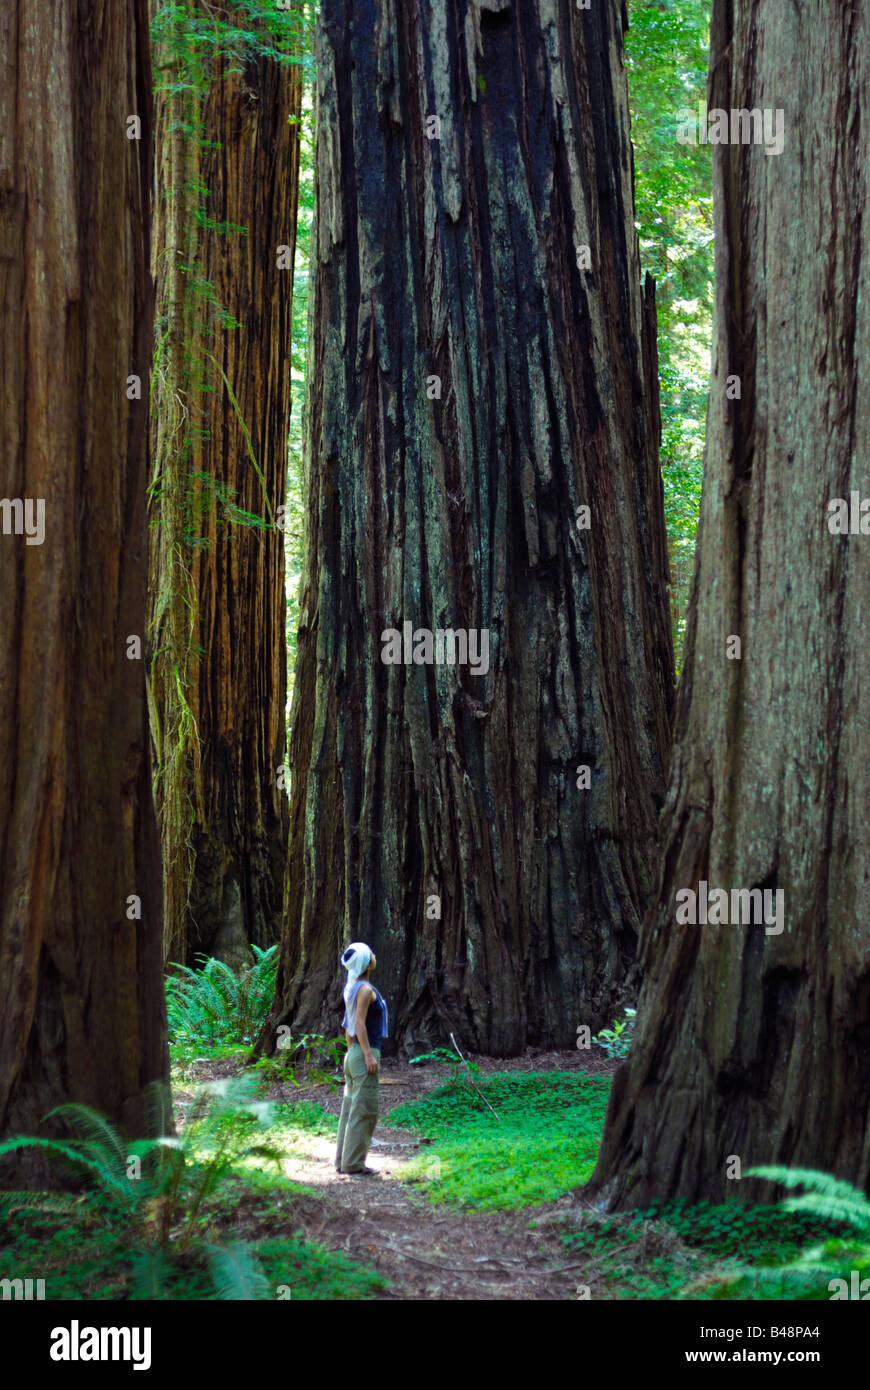 Tourist standing among giant redwoods in Stout Grove, Jedediah Smith Redwoods State Park, Del Norte County, California, - Stock Image